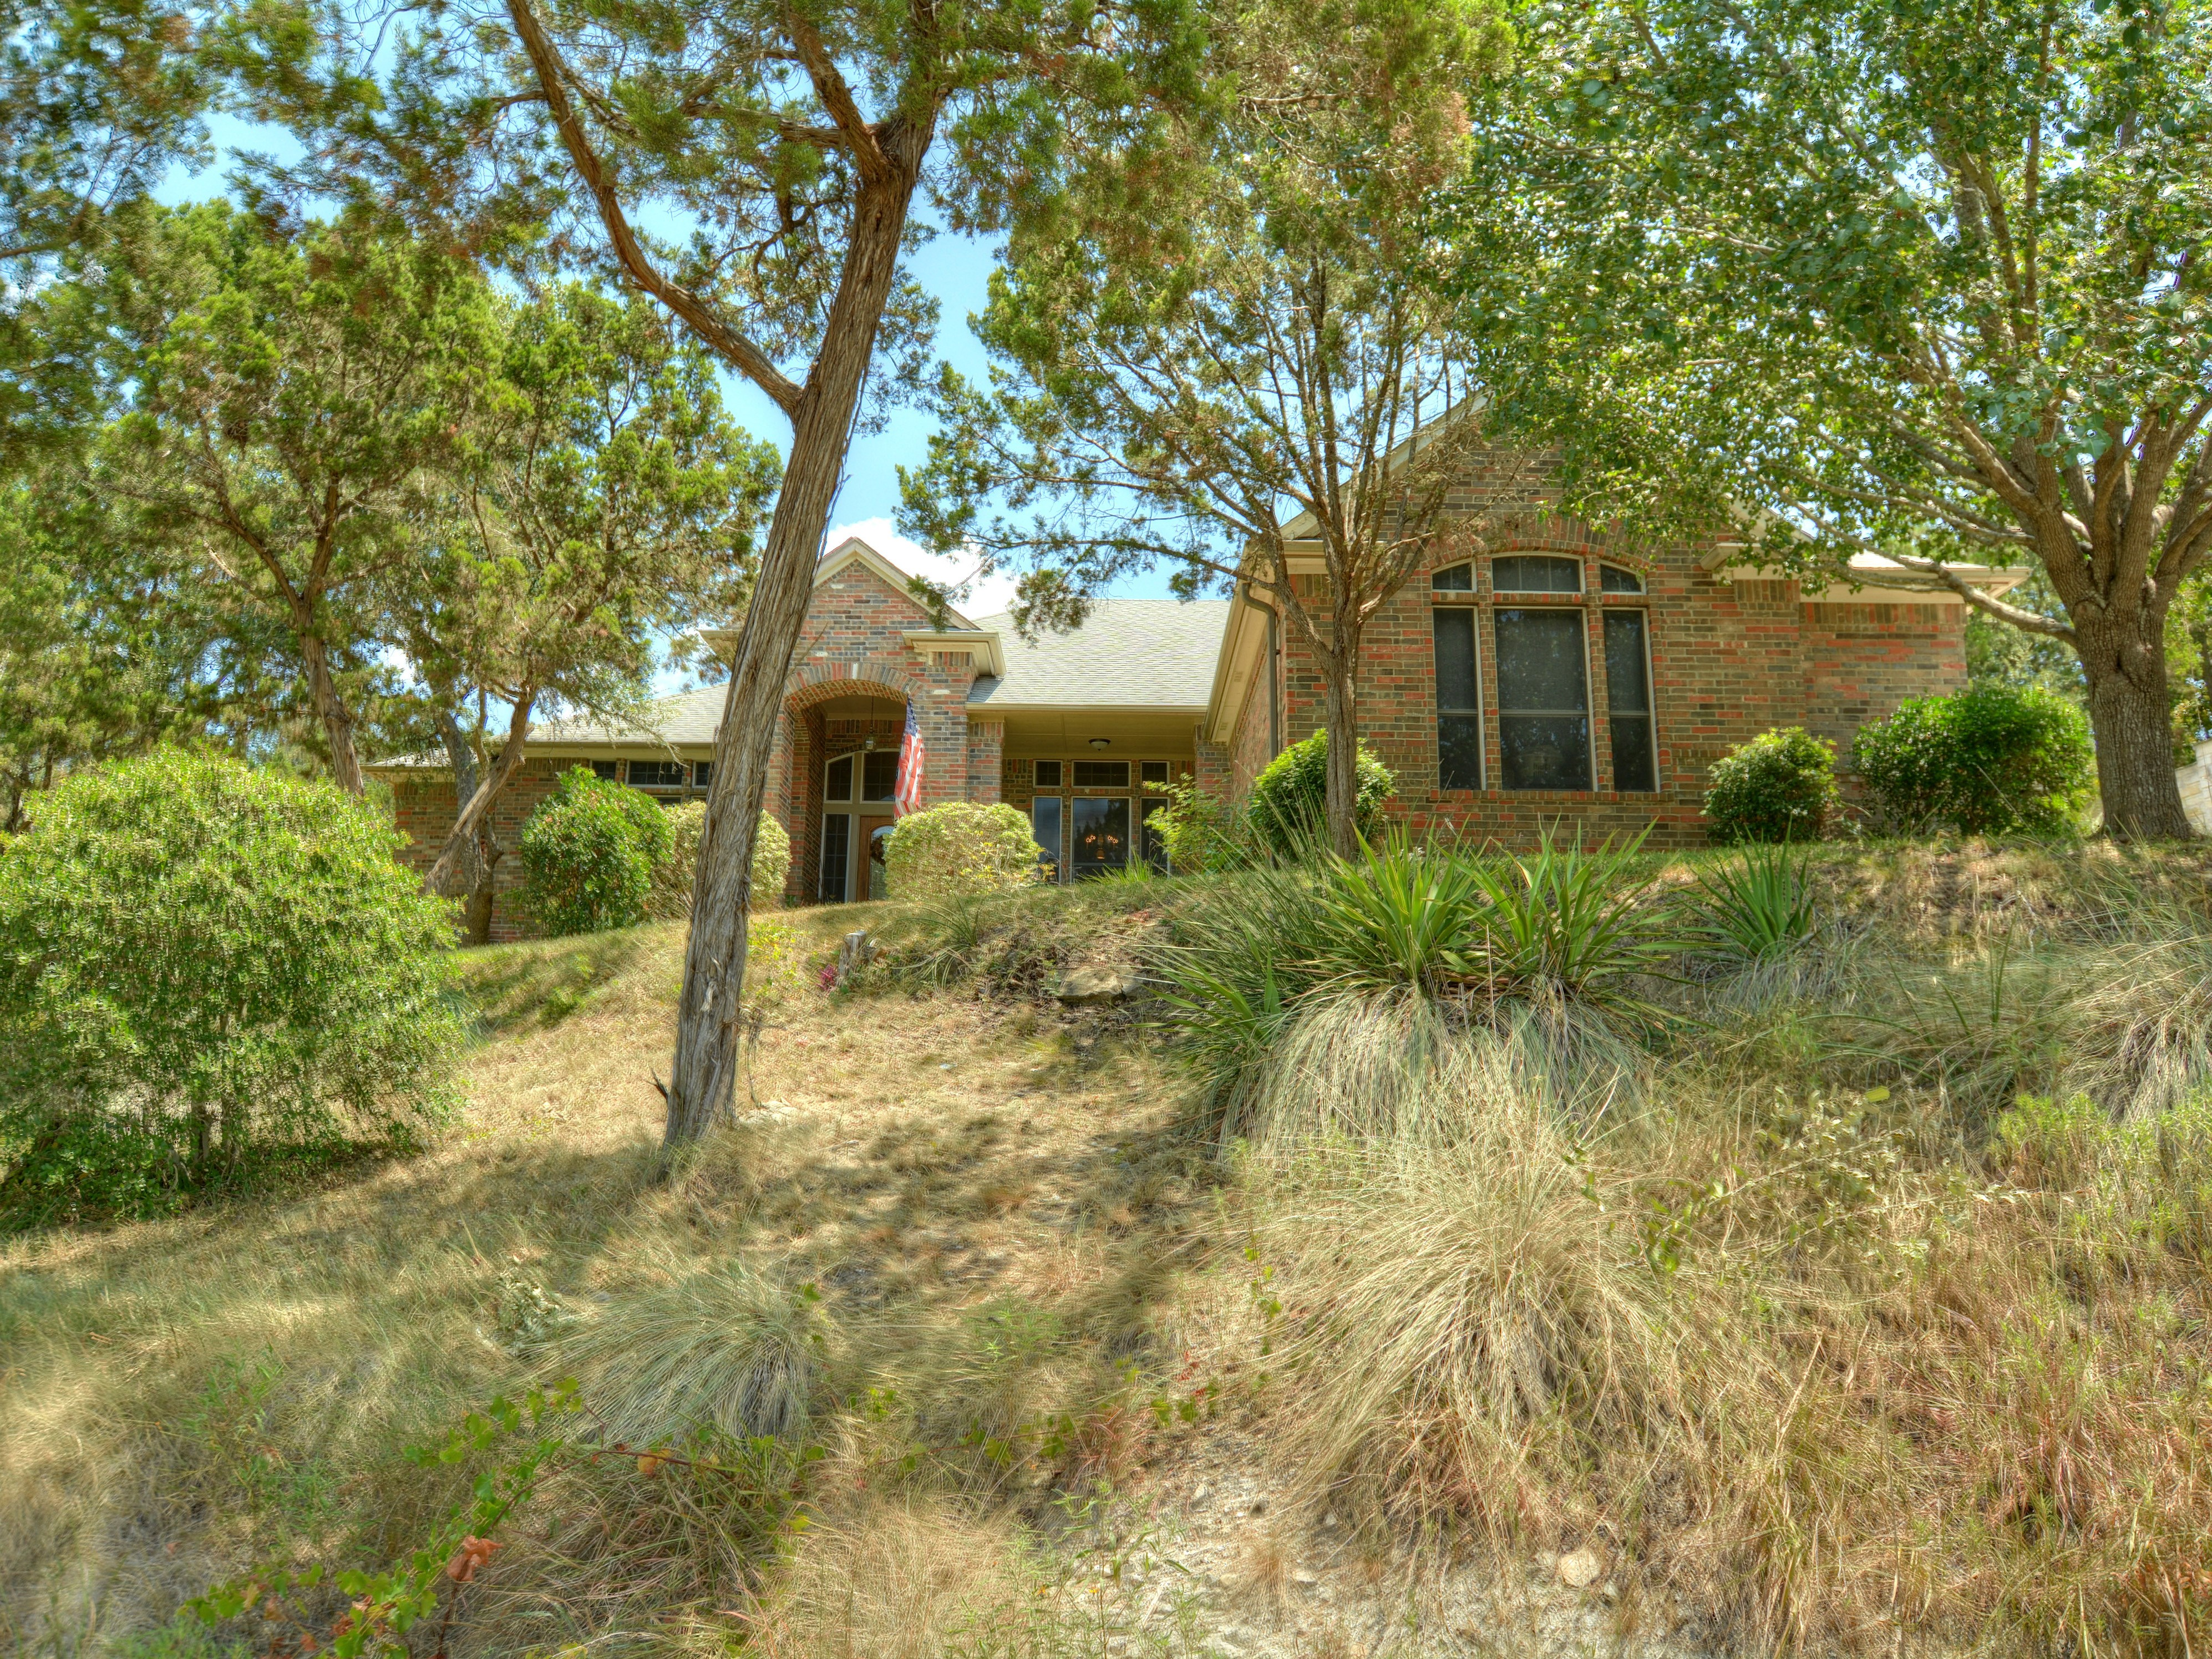 Single Family Home for Sale at Beautifully Designed Home 6809 Bright Star Ln Austin, Texas 78736 United States